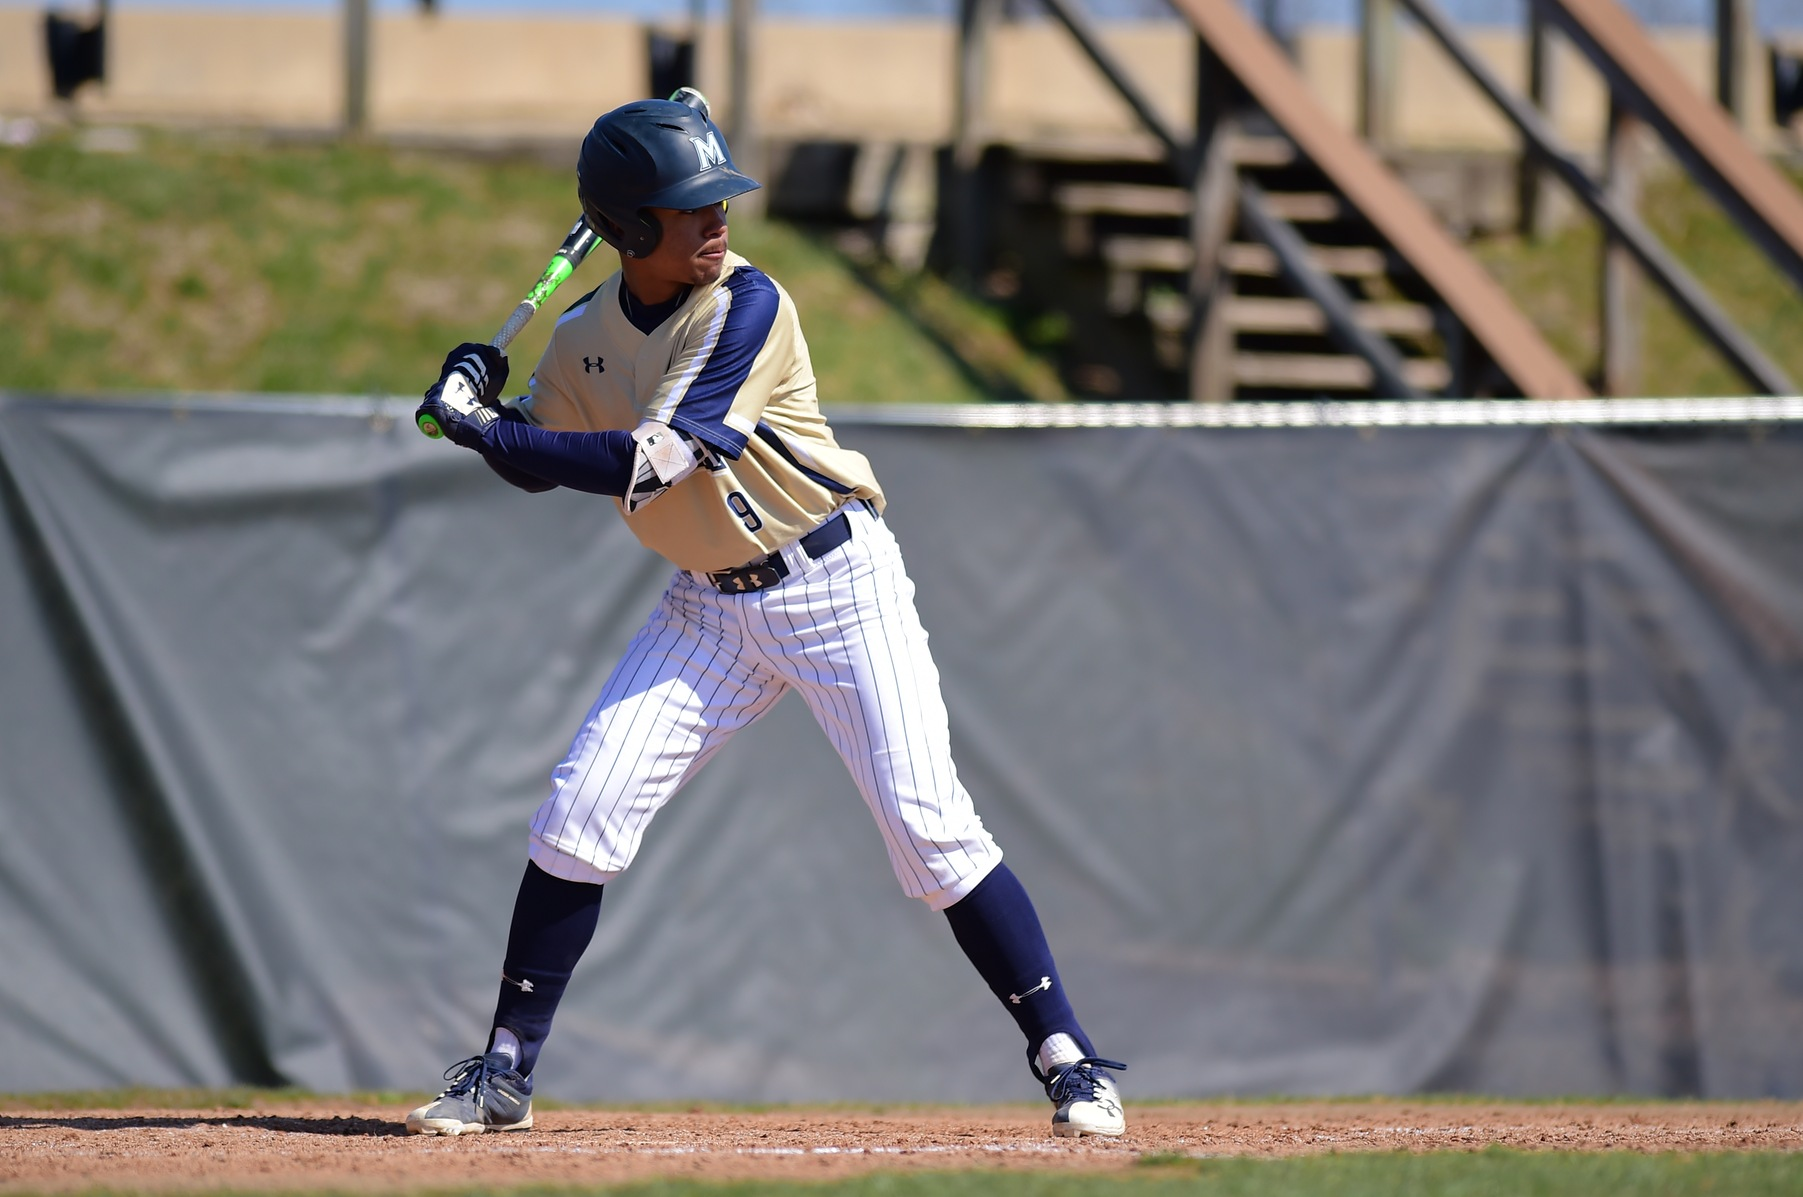 Mount Baseball Takes On Maryland-Eastern Shore For Mid-Week Doubleheader Action On Tuesday